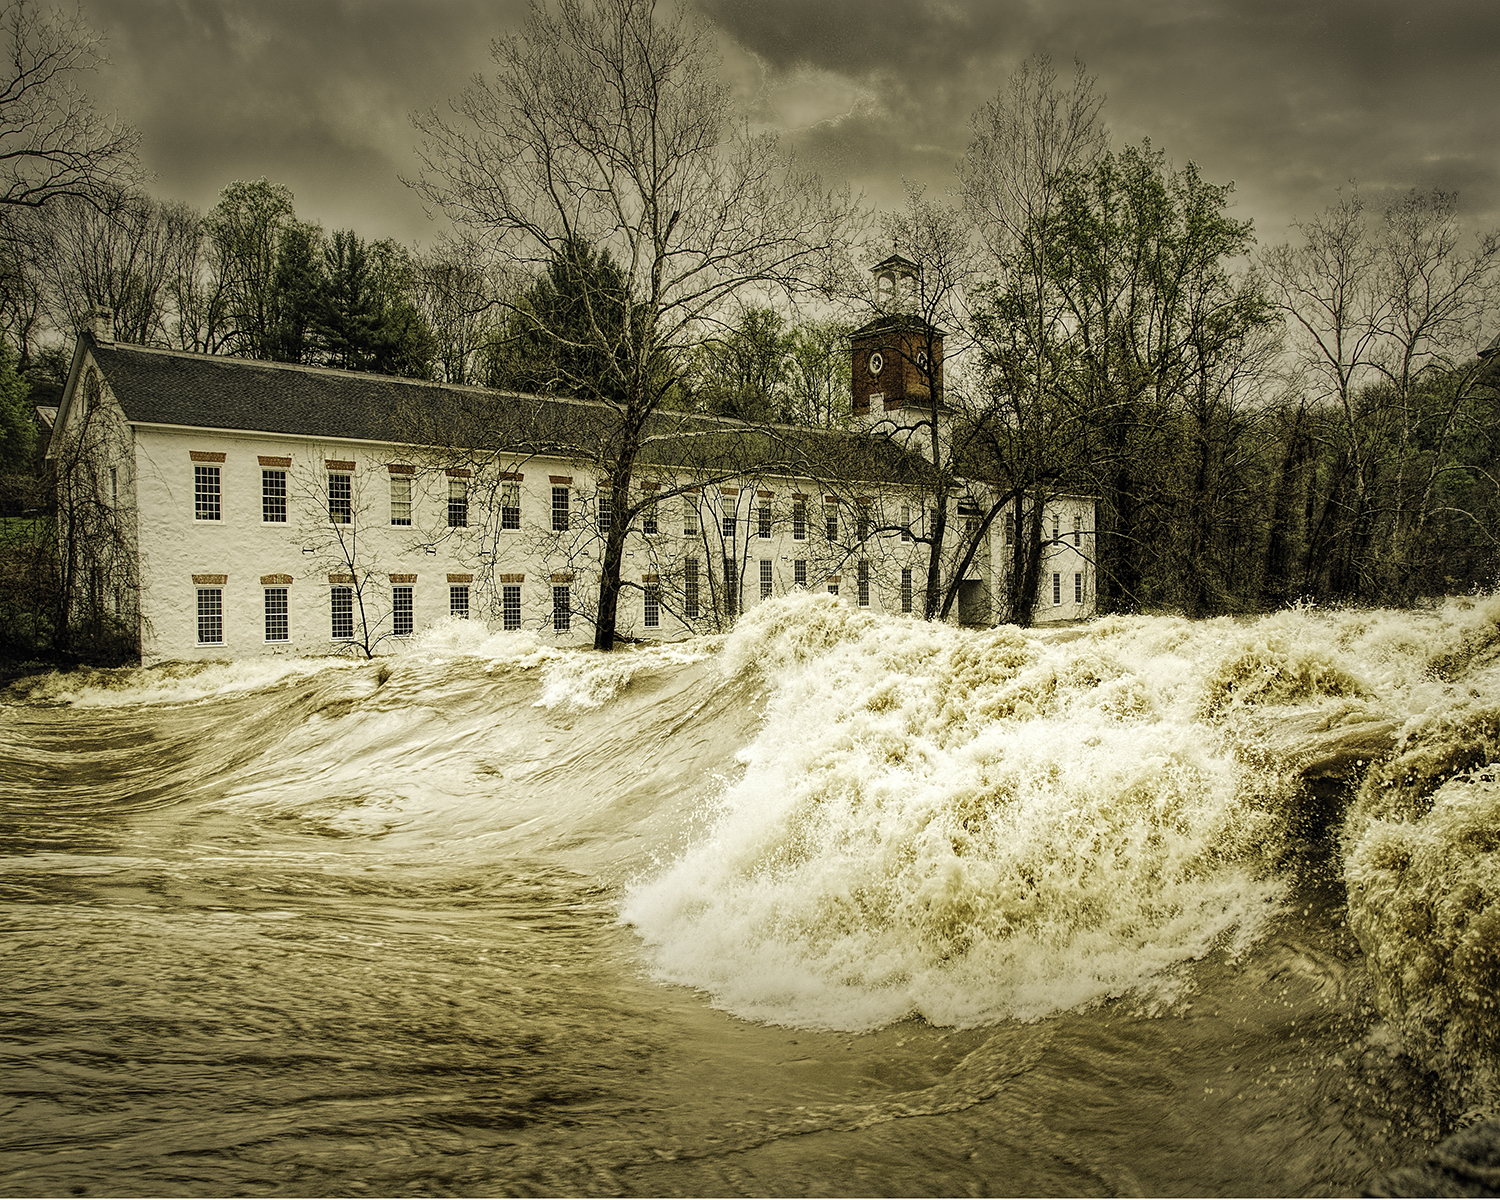 Jim Smigie - Brandywine Creek Flood - Wilmington, Delaware